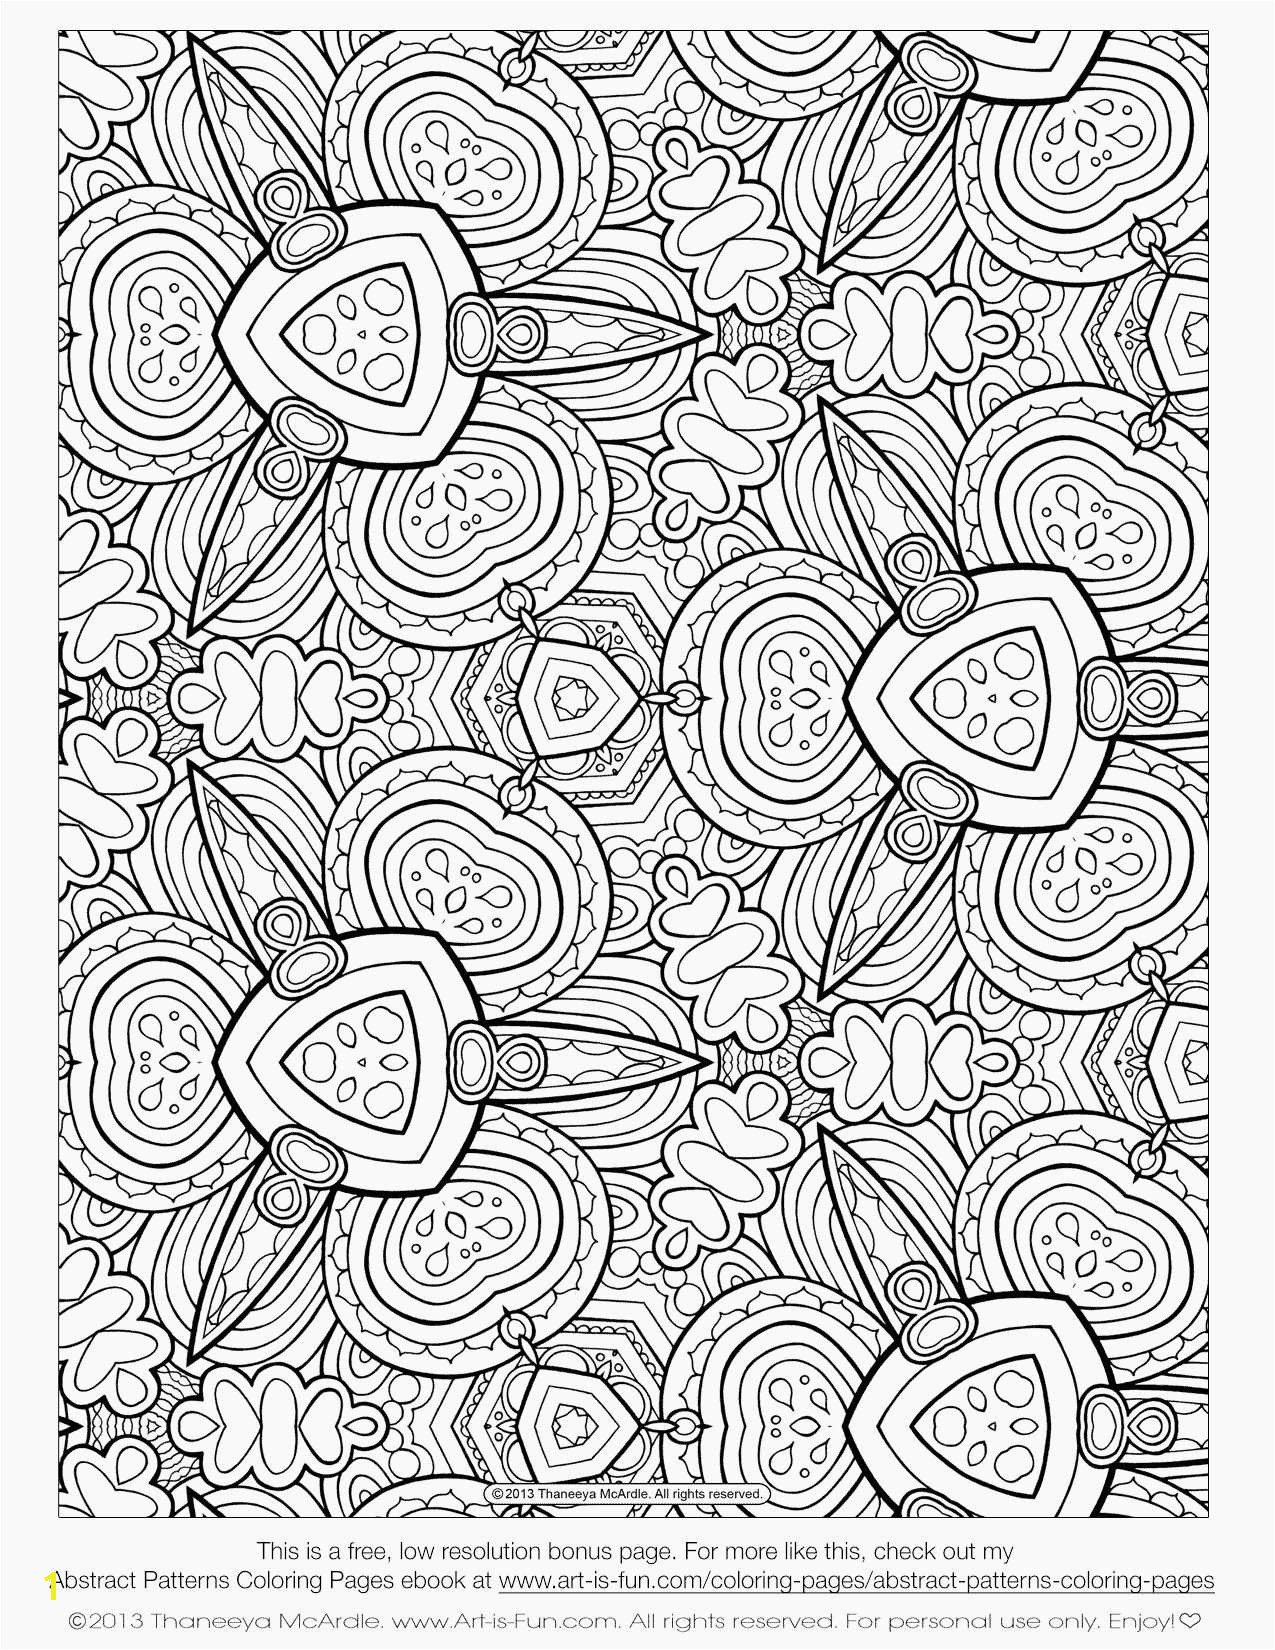 Flower Coloring Pages Printable for Adults Best Winter Coloring Pages Adults Best Free Coloring Pages